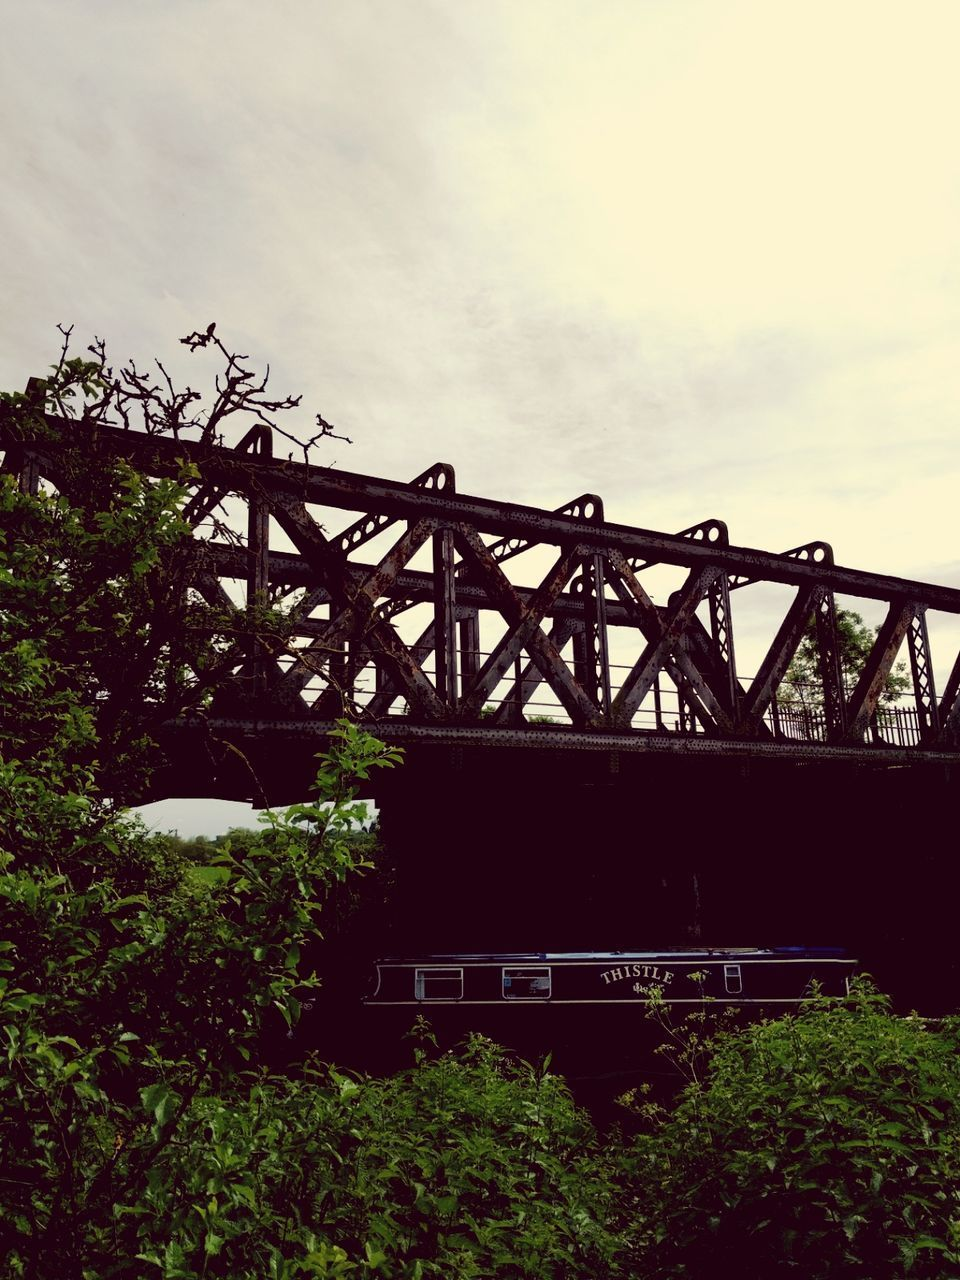 built structure, outdoors, sky, low angle view, day, architecture, no people, bridge - man made structure, plant, growth, tree, nature